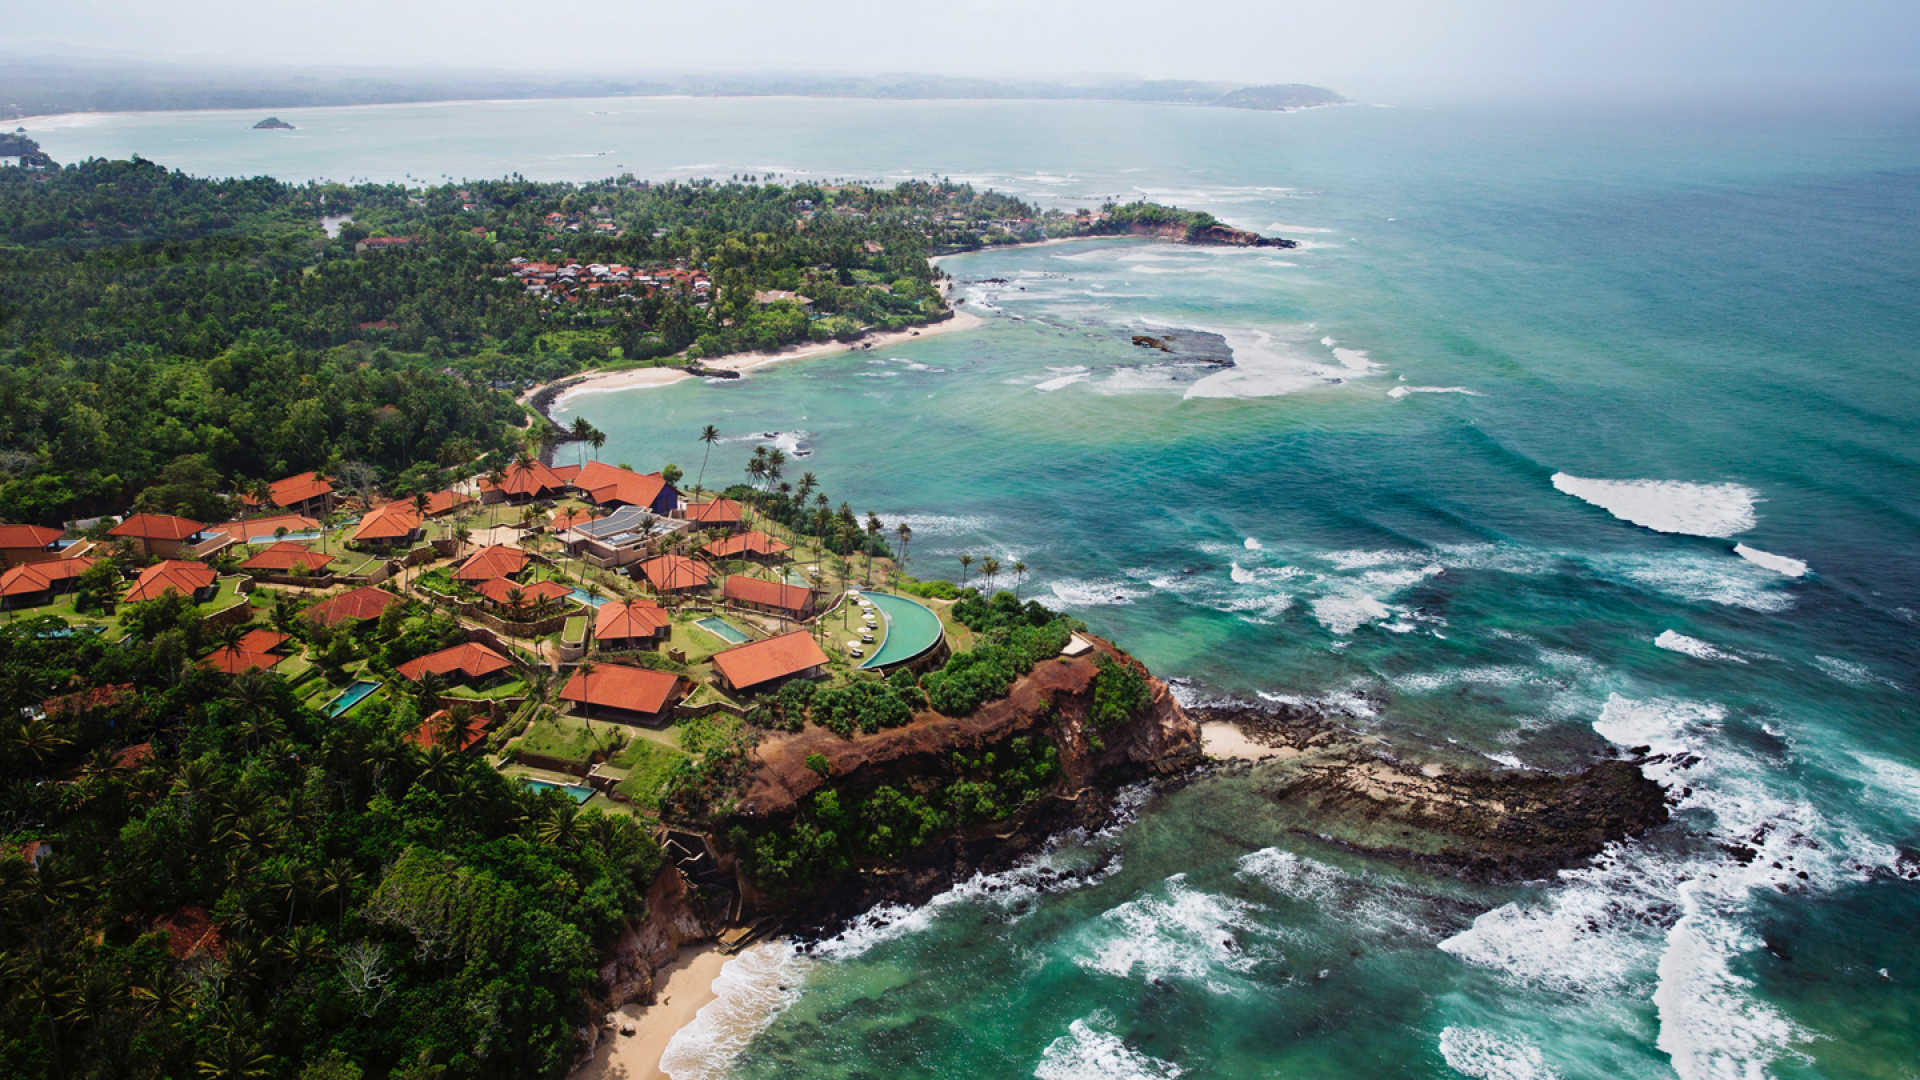 invite-to-paradise-sri-lanka-specialists-experts-travel-agent-tour-operator-cape-weligama-aerial.jpg